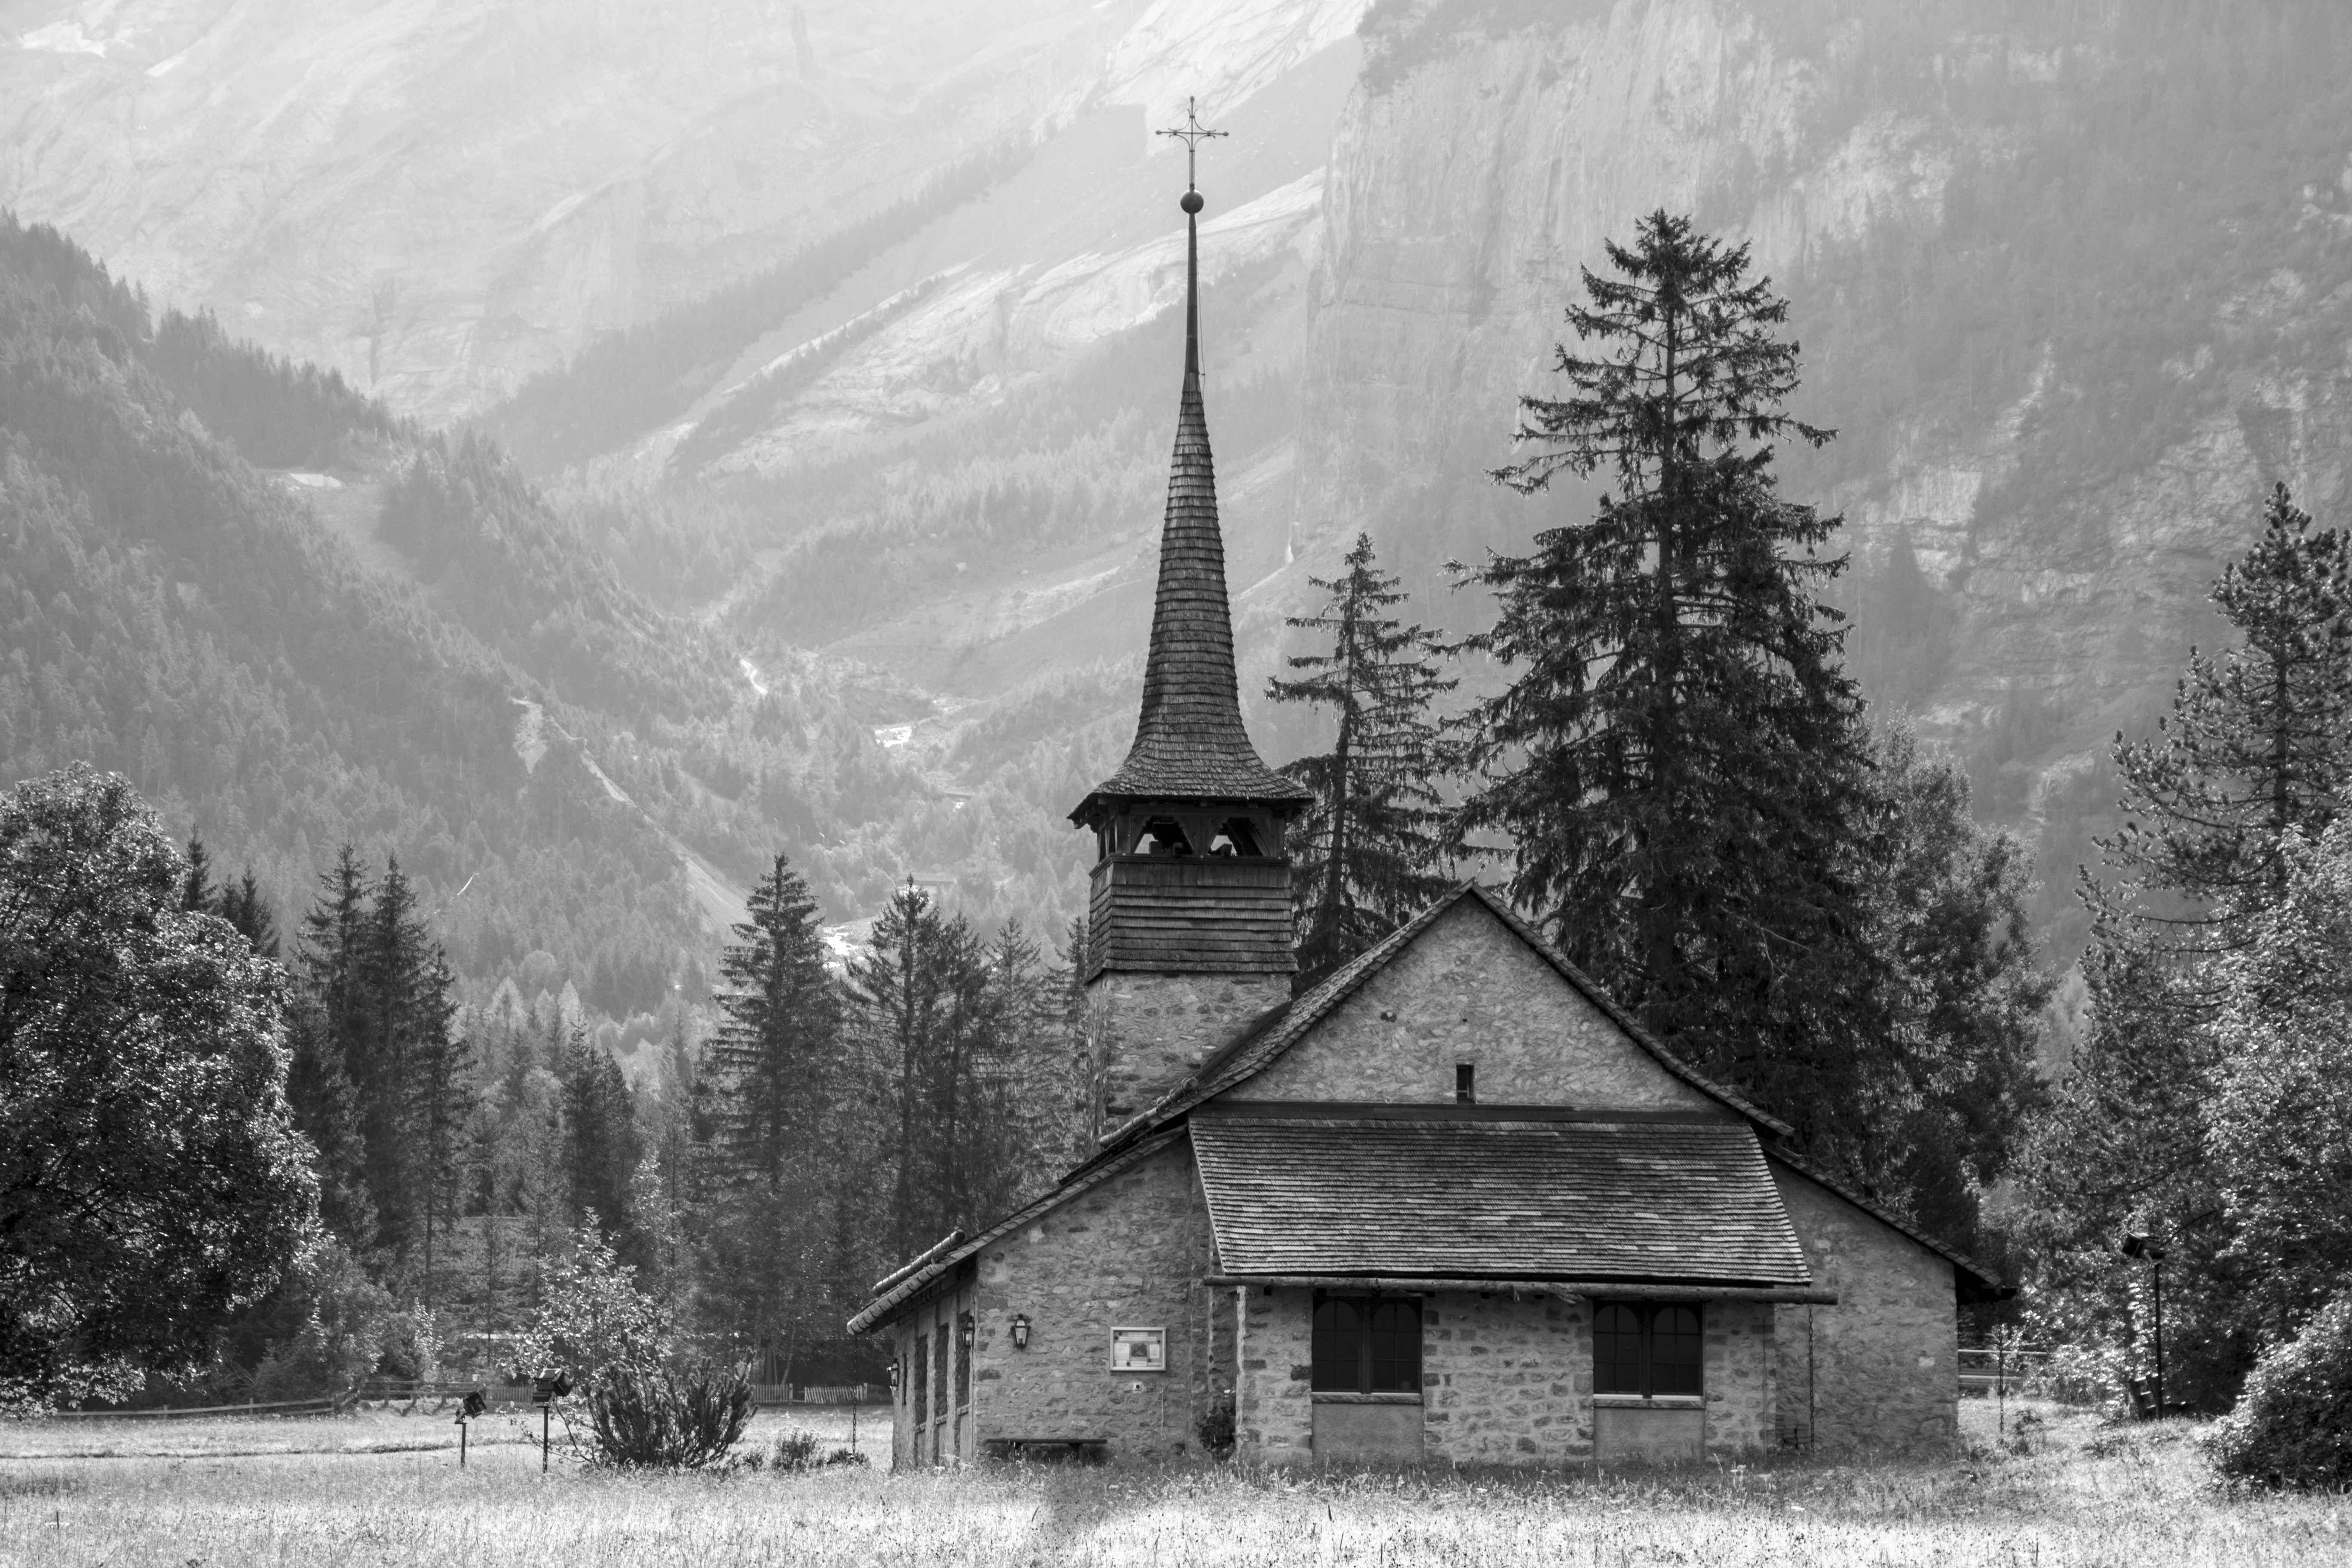 Church in the Open Field Near the Mountain, Black-and-white, Chapel, Church, Fog, HQ Photo